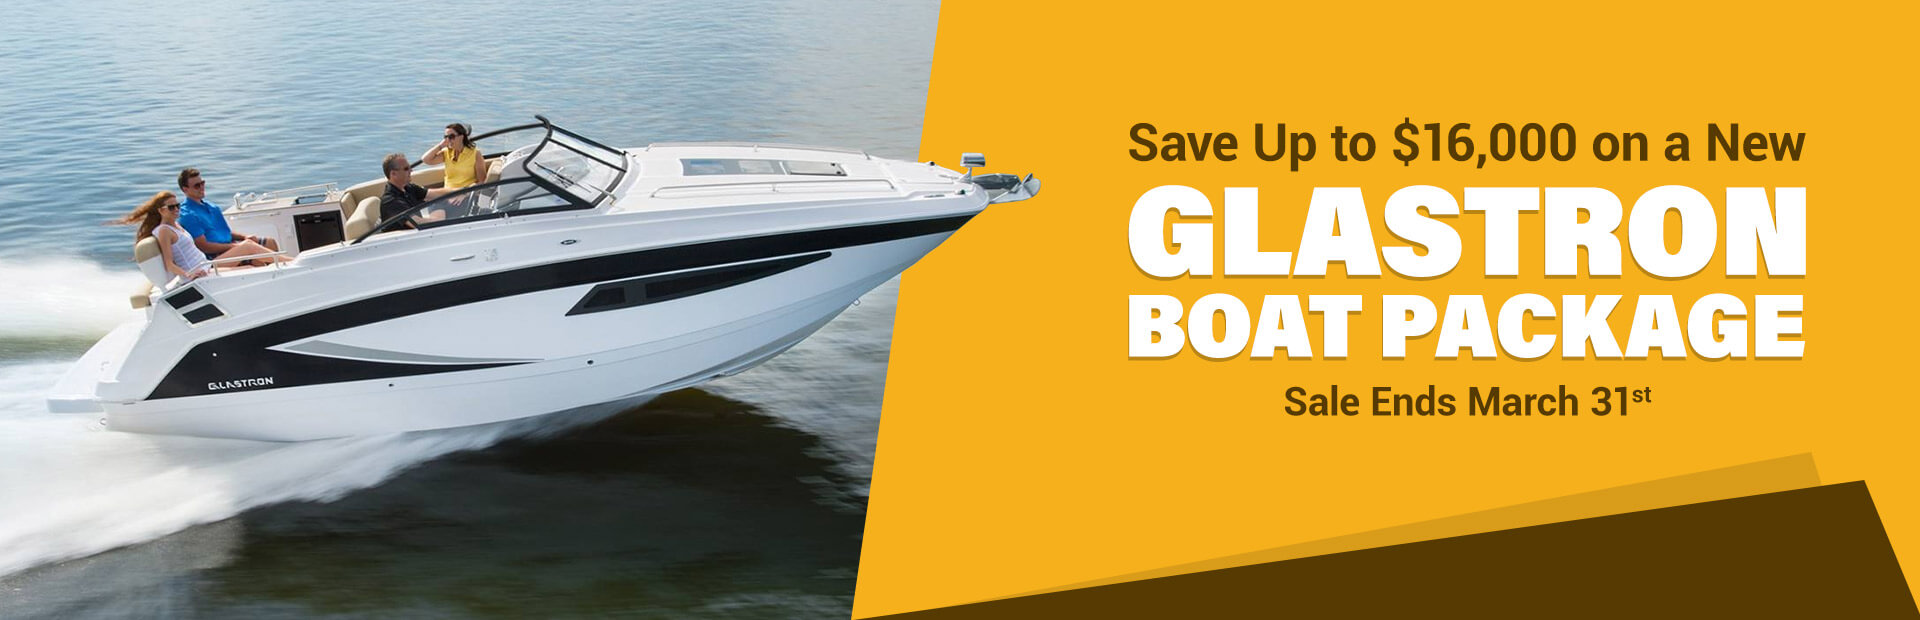 Save up to $16,000 on a new Glastron boat package! This sale ends March 31st.